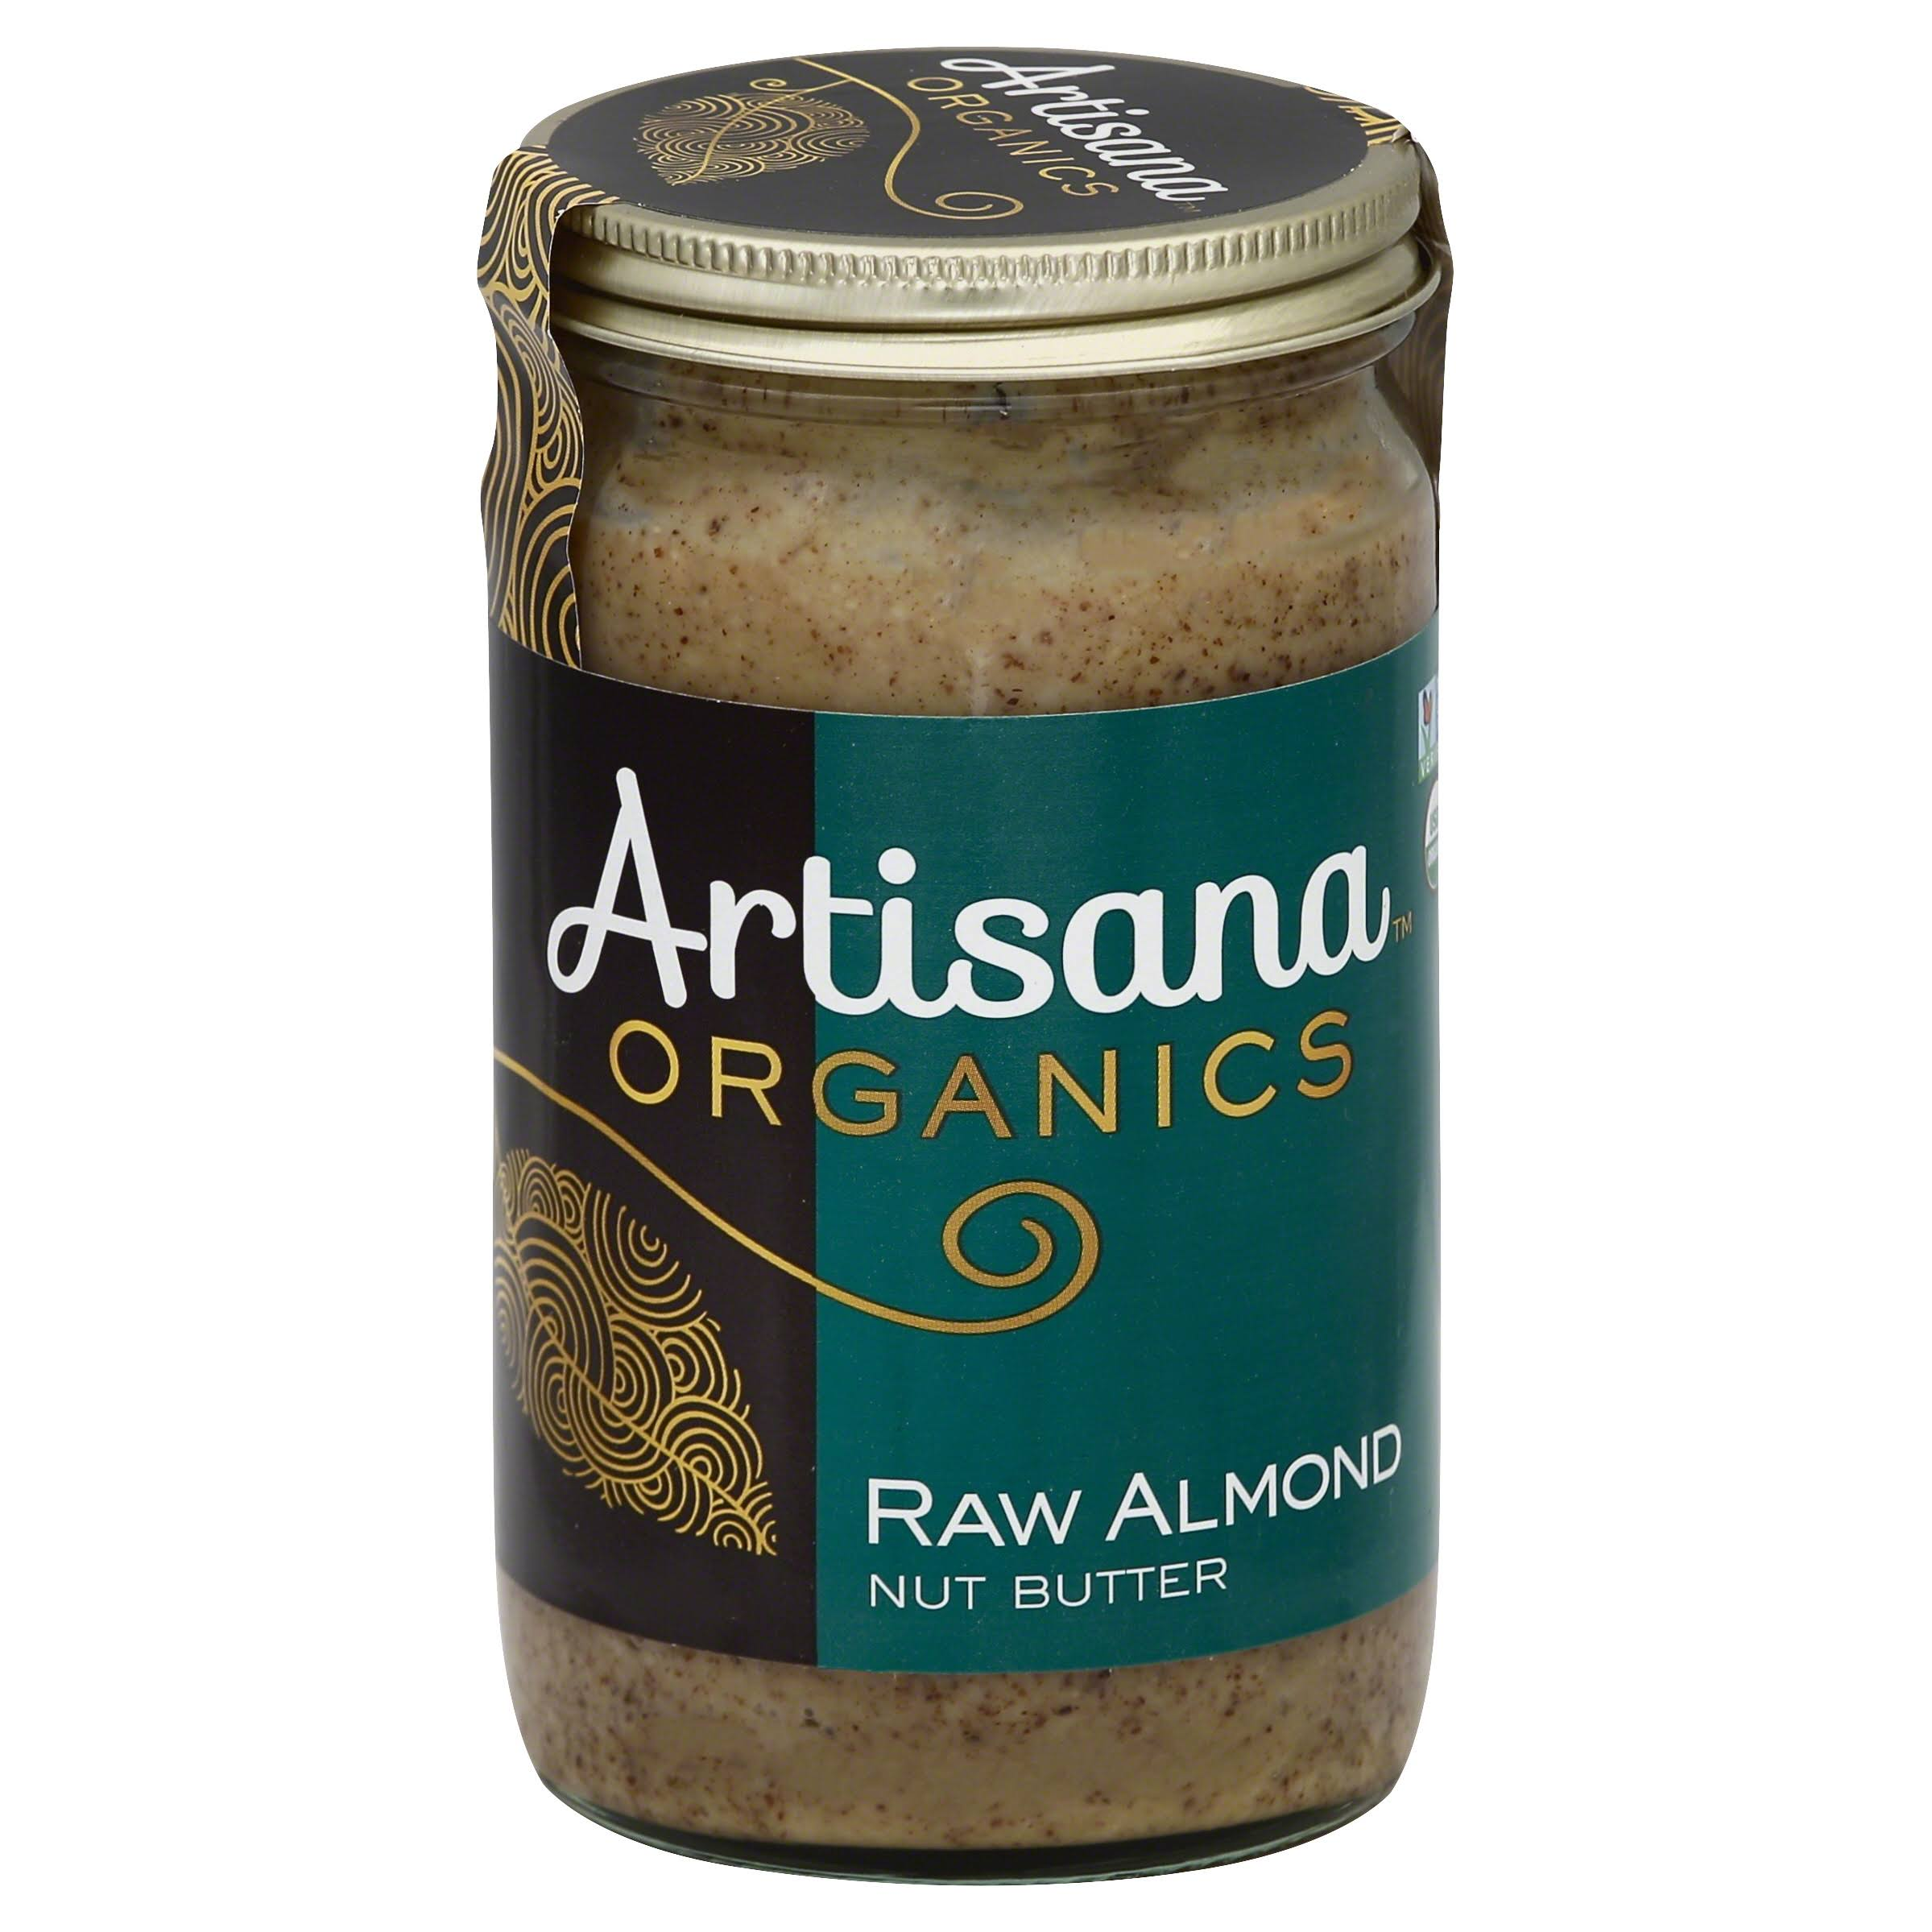 Artisana Organics Raw Almond Nut Butter - 14oz